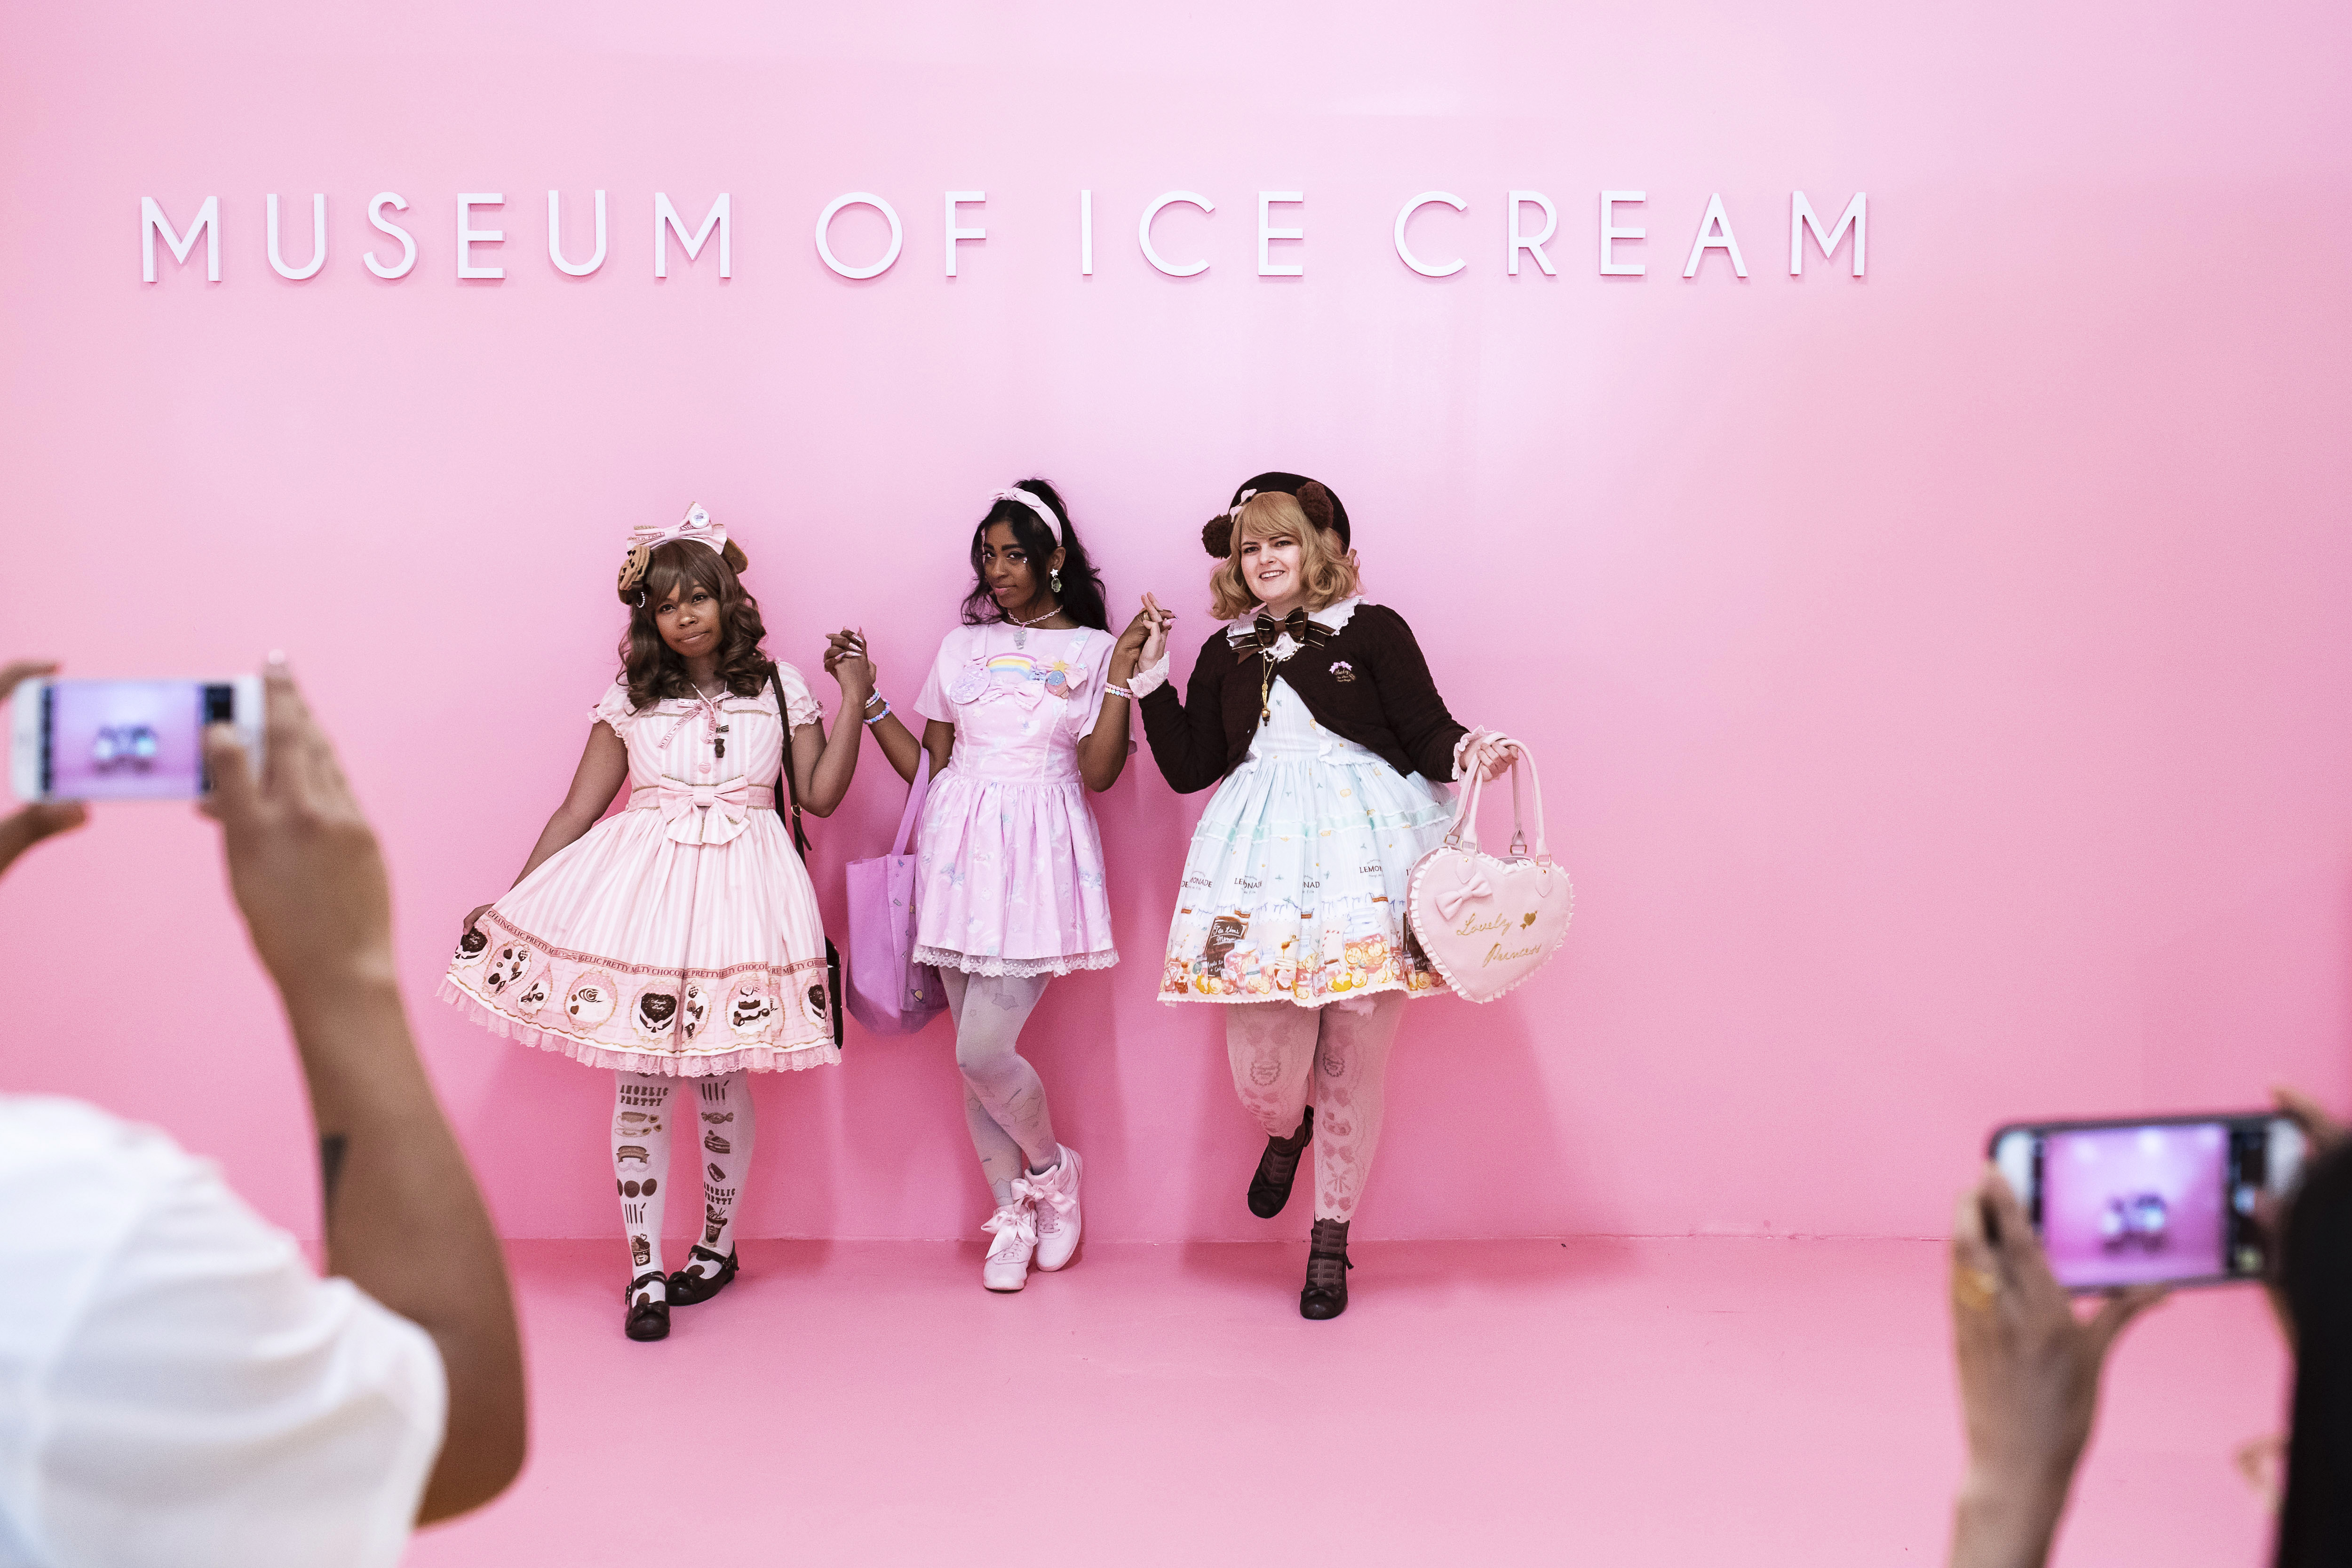 From left, Christina Morris, Tanaya Torres and Tara Hayes pose for photos at the Museum of Ice Cream's Pint Shop. MUST CREDIT: Photo by Karsten Moran for The Washington Post.